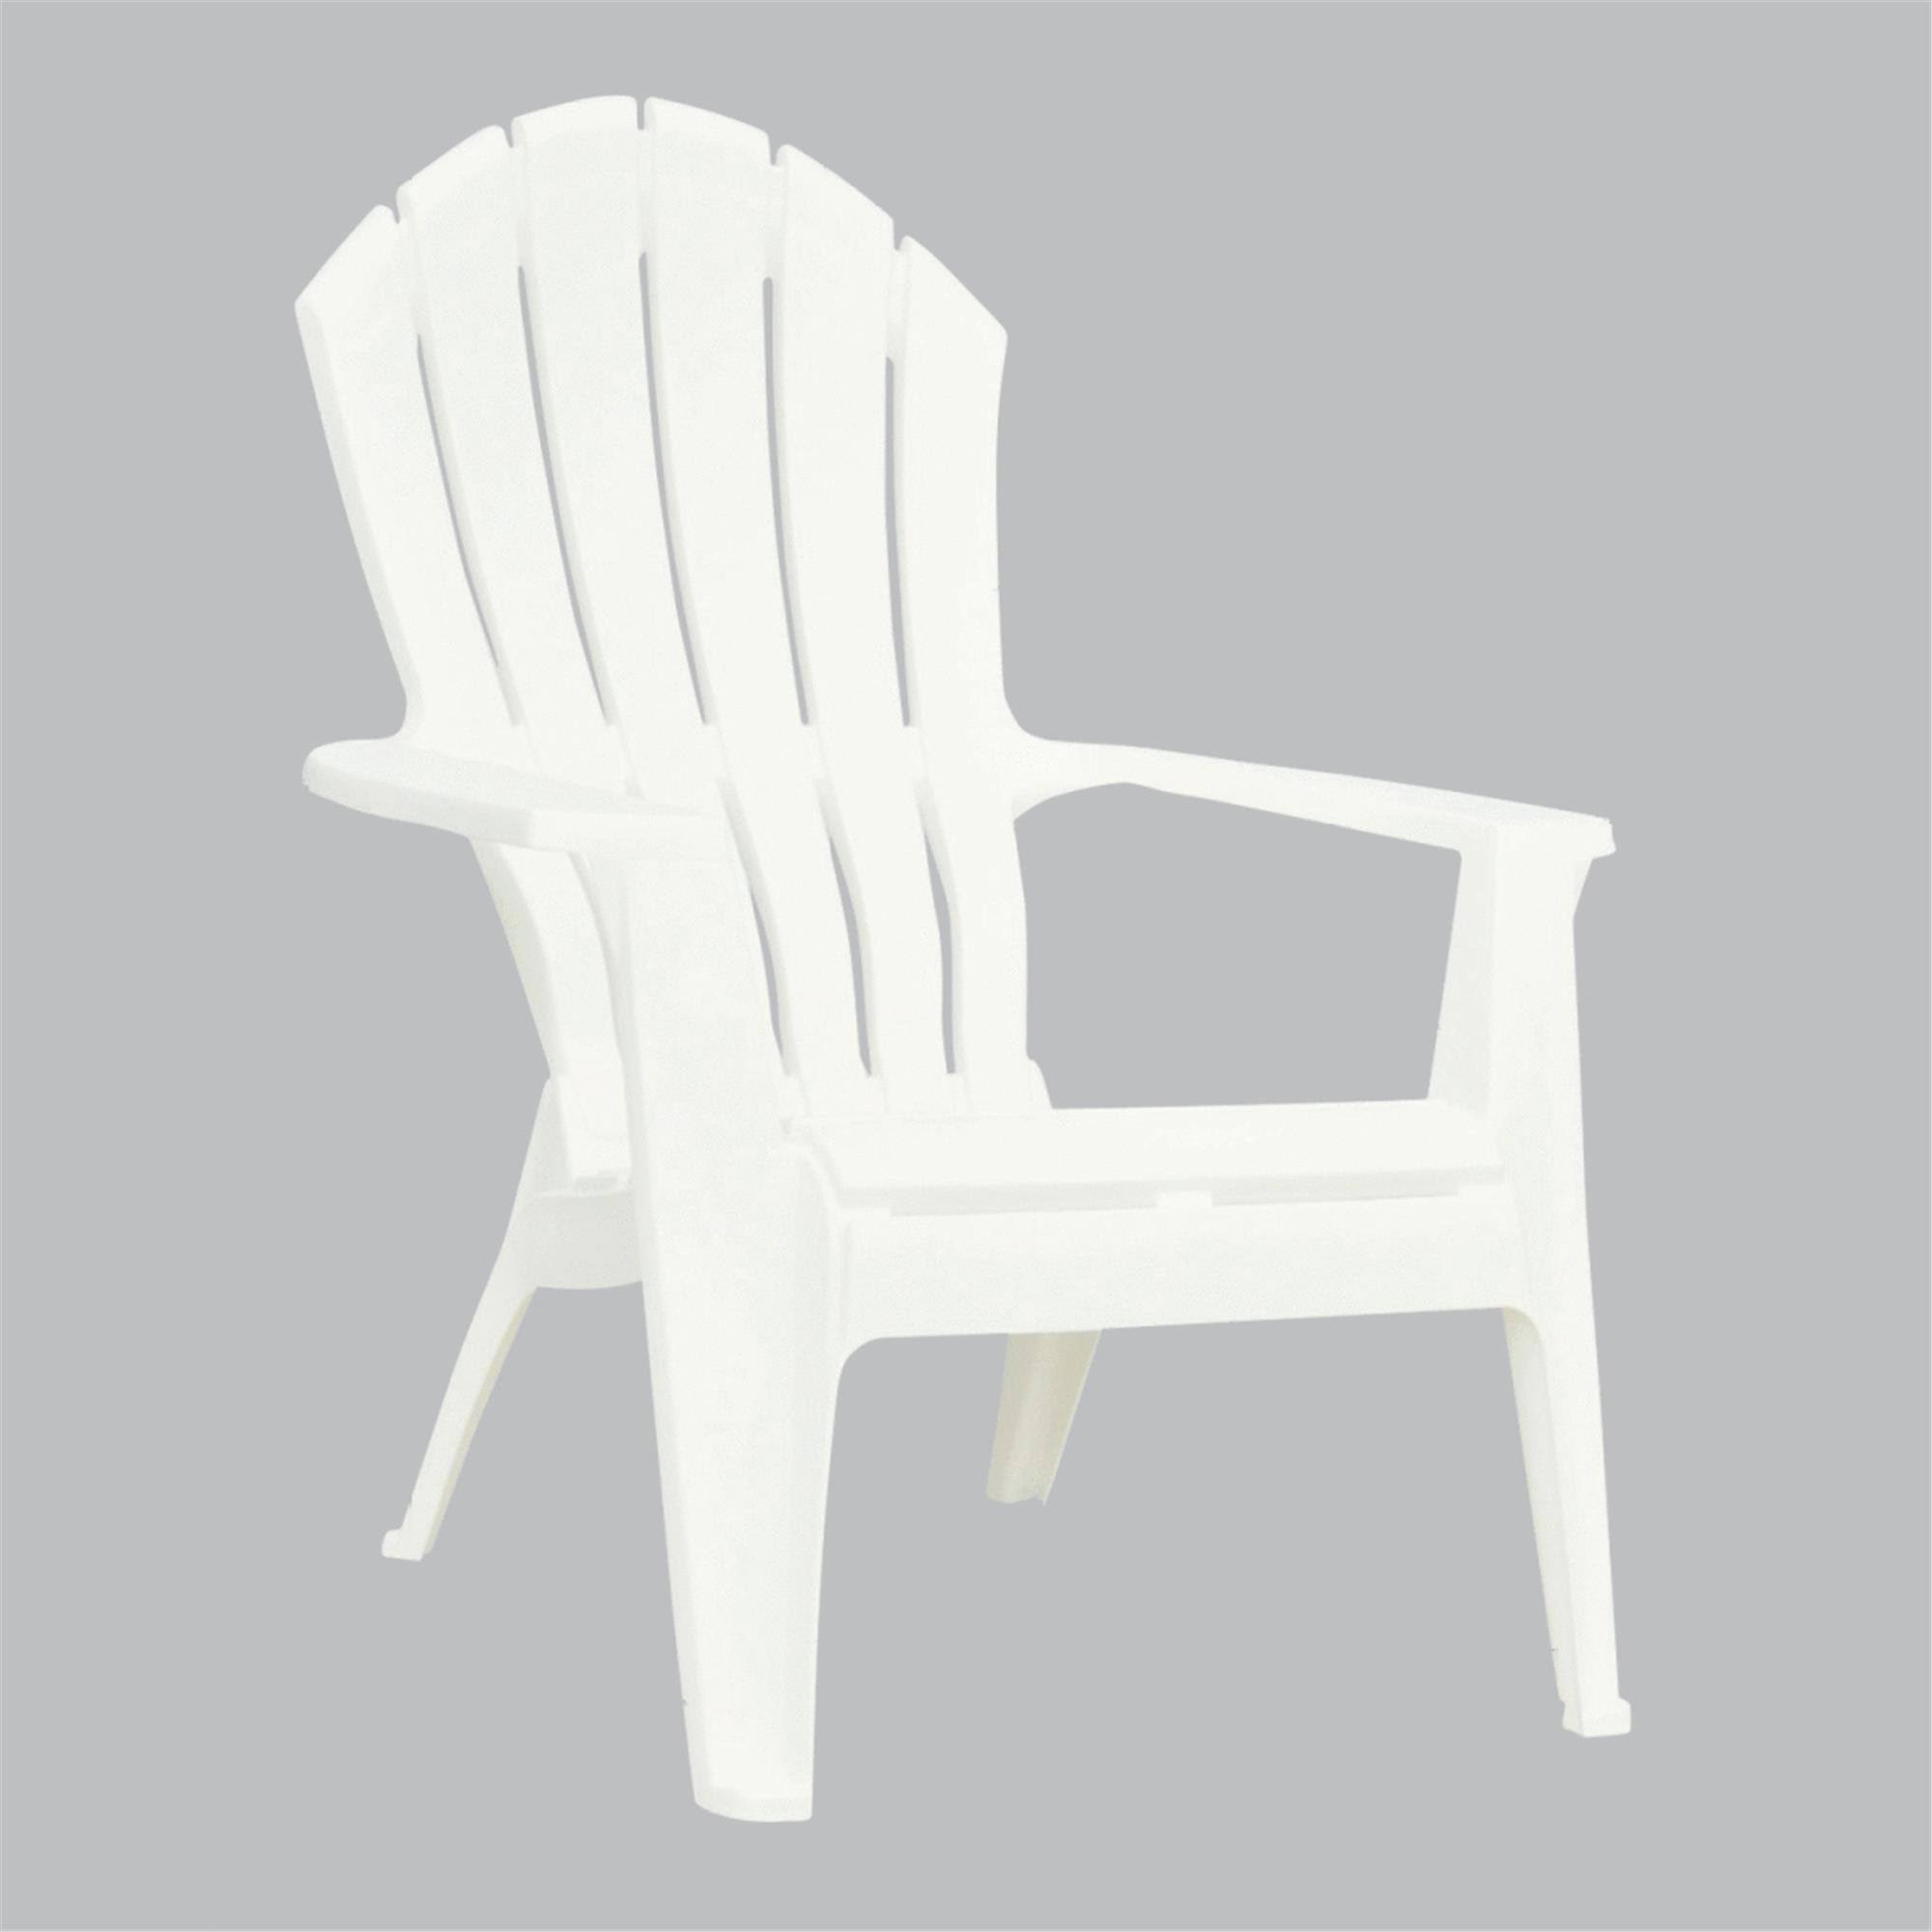 Adams Real Comfort Adirondack Chair - White